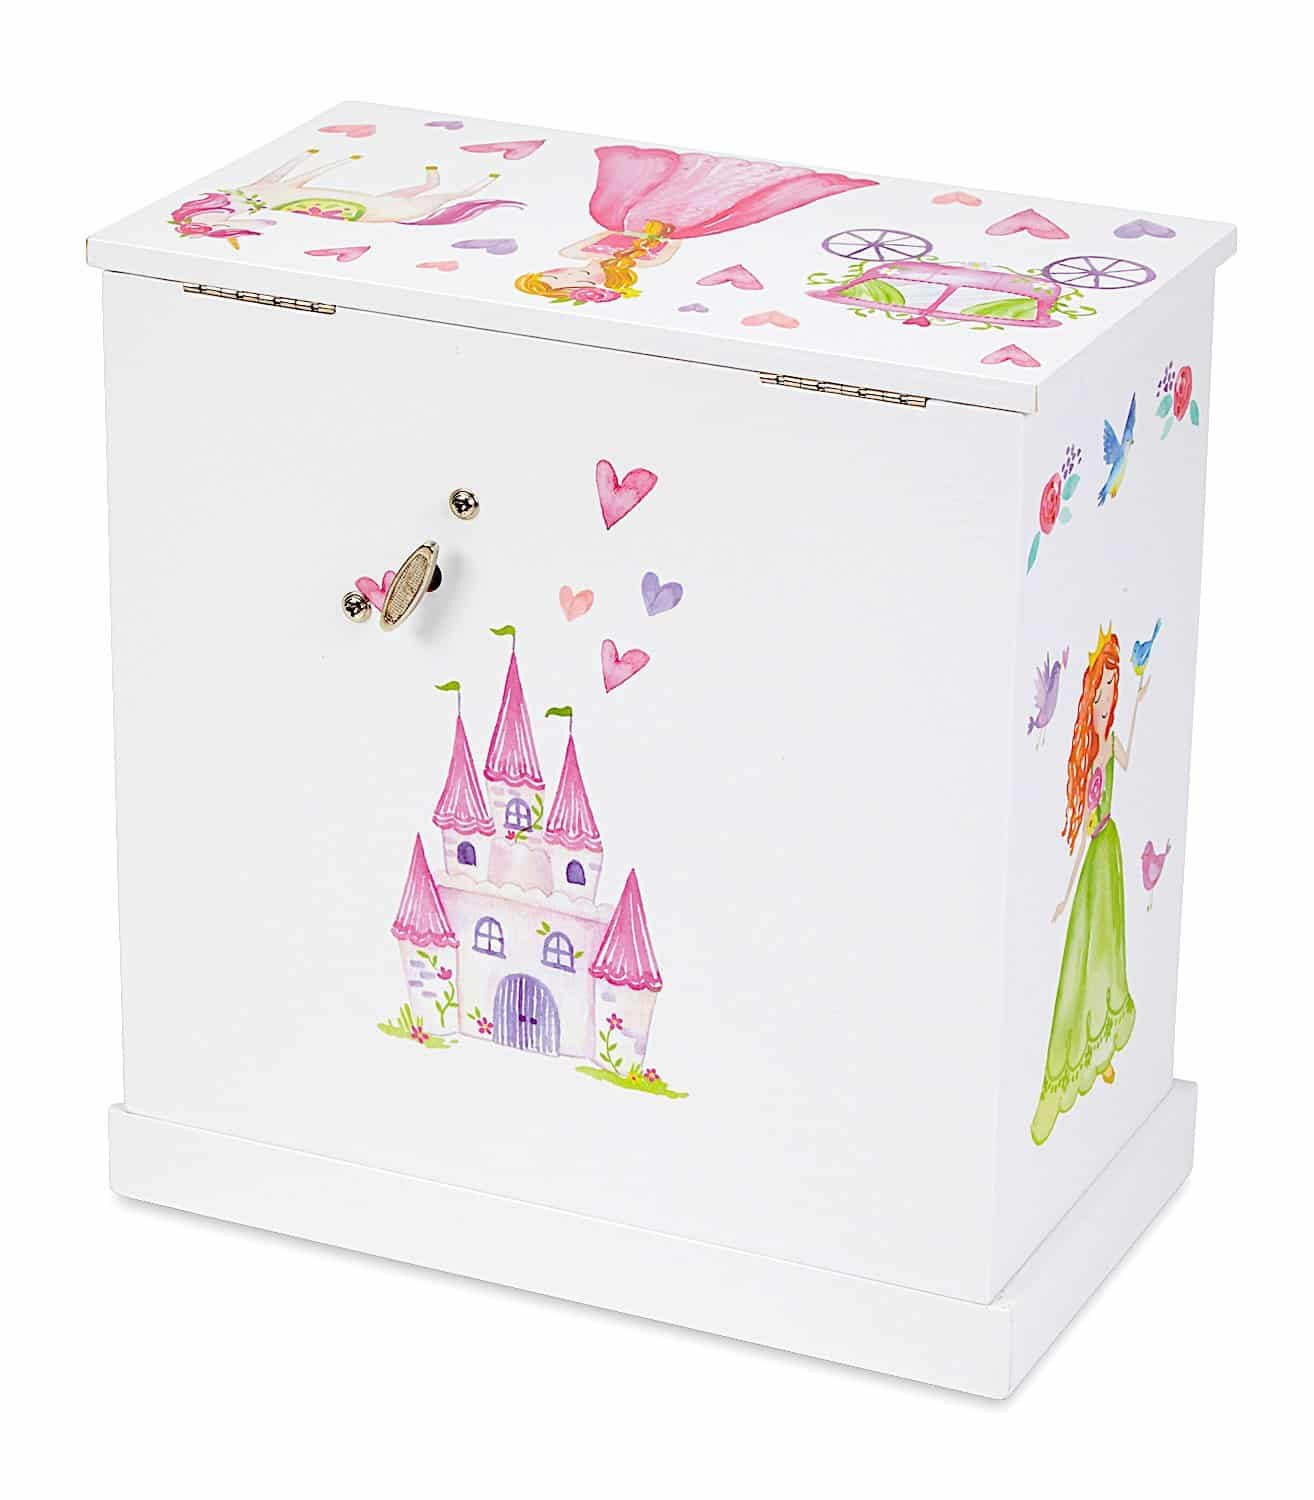 Jewelkeeper Unicorn Musical Jewelry Box With 3 Pullout Drawers